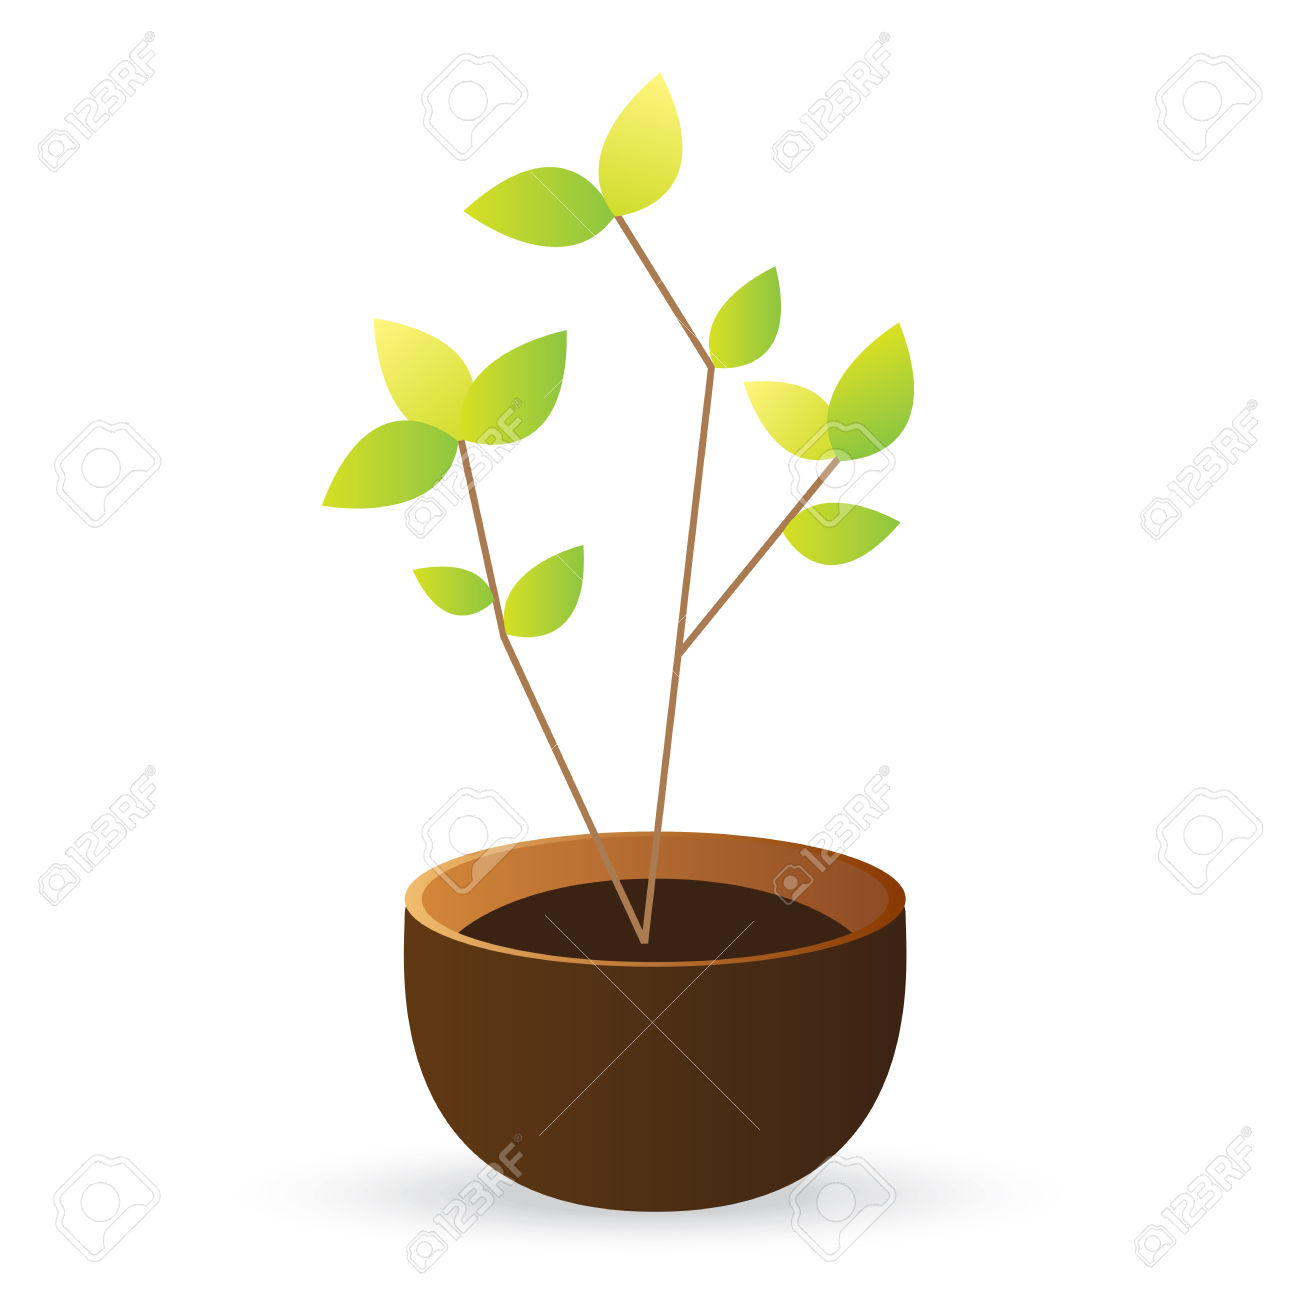 Leaves grow clipart #11